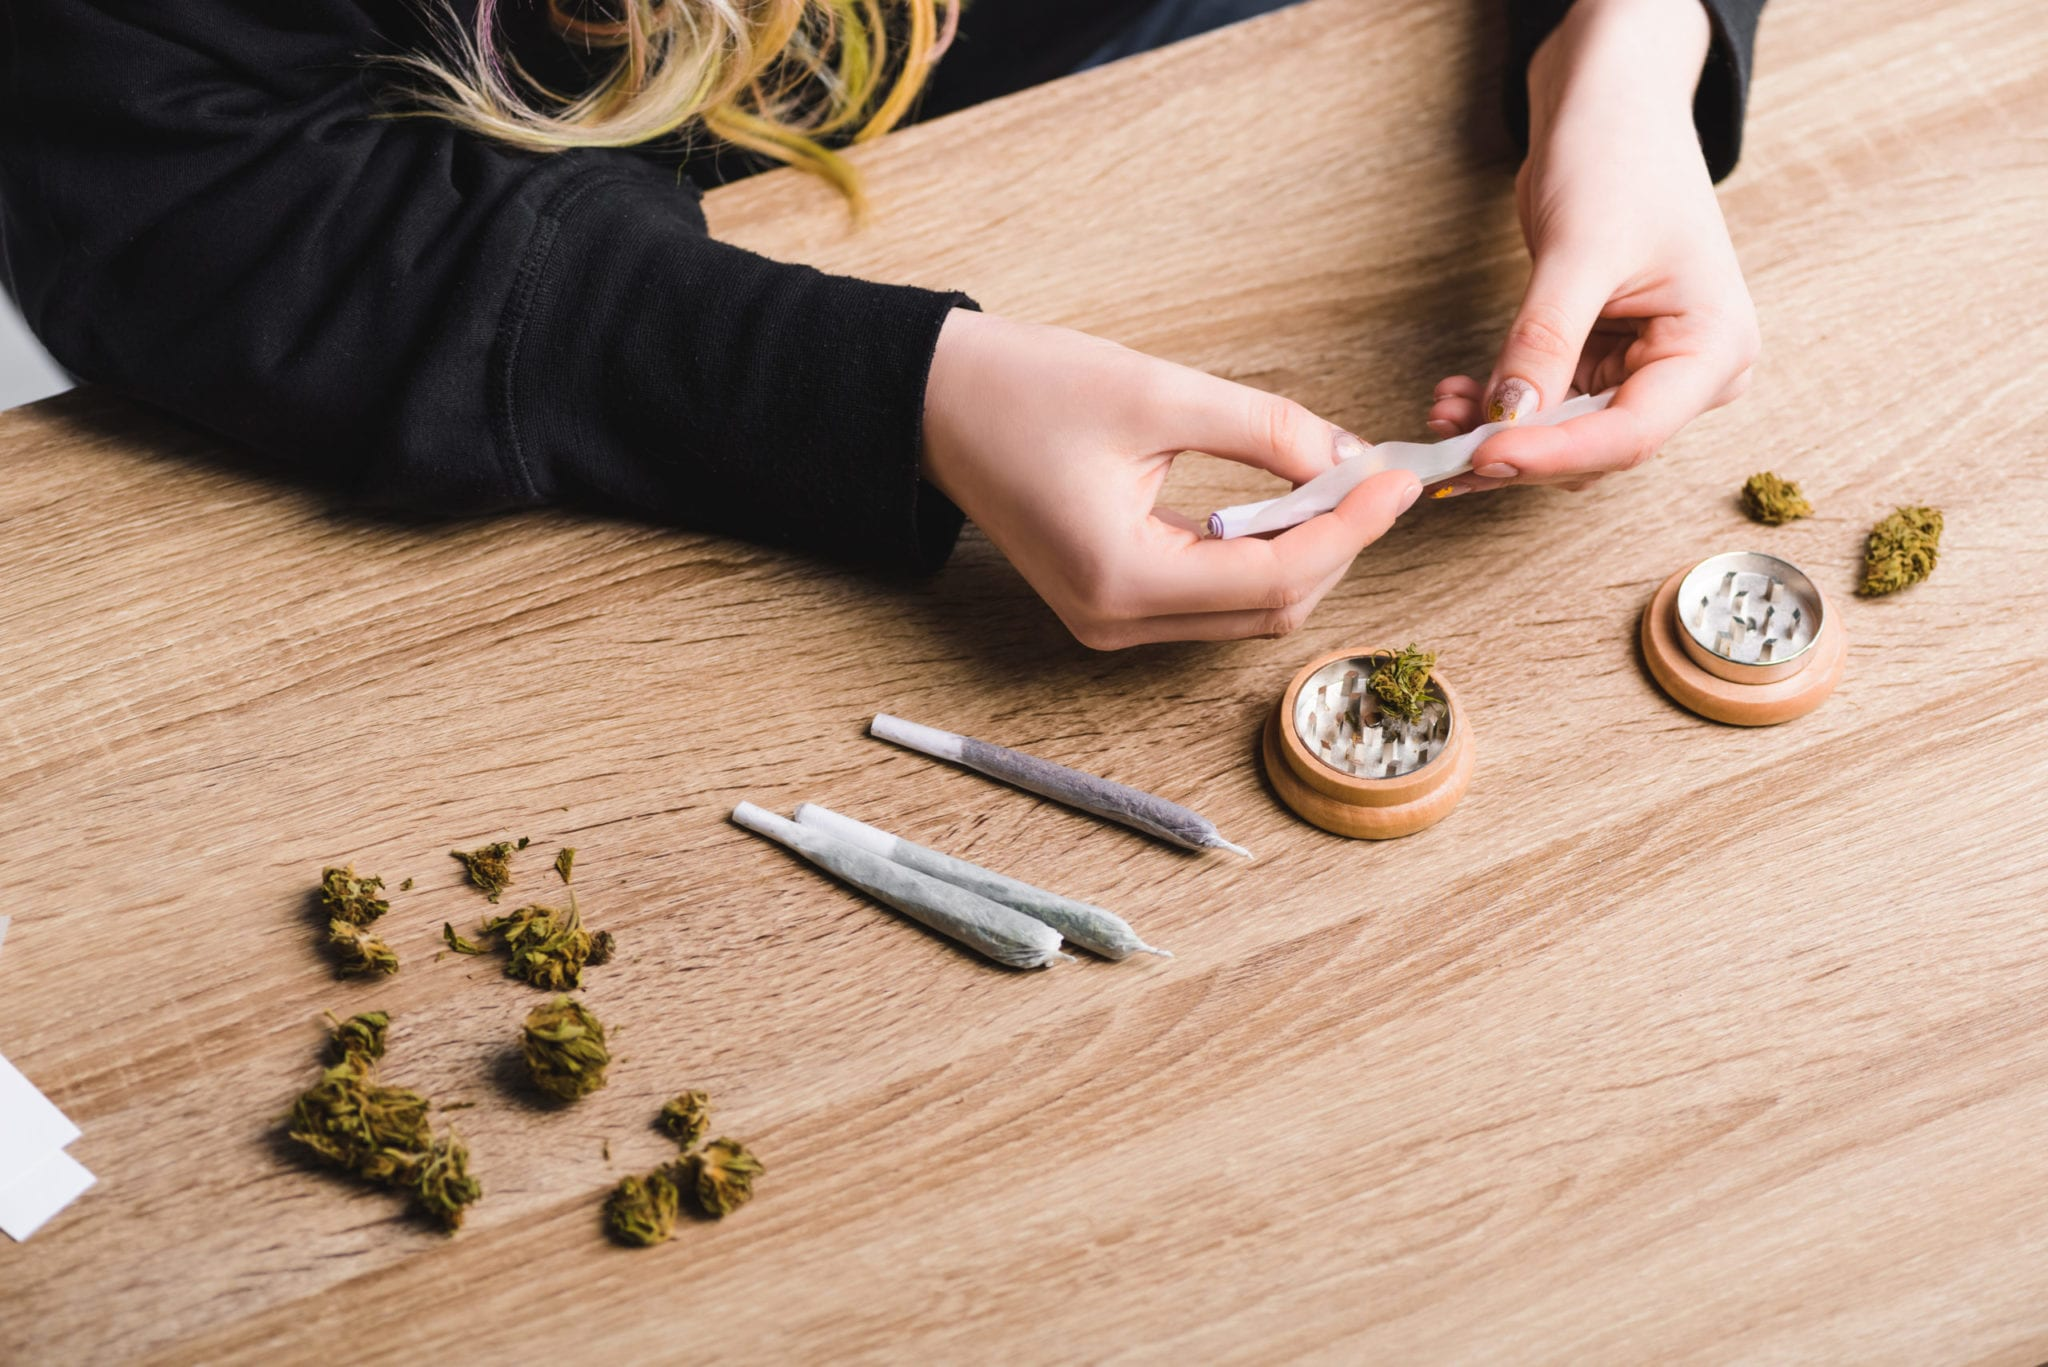 Daily Cannabis Use Could Help Battle Overdose Crisis, Study